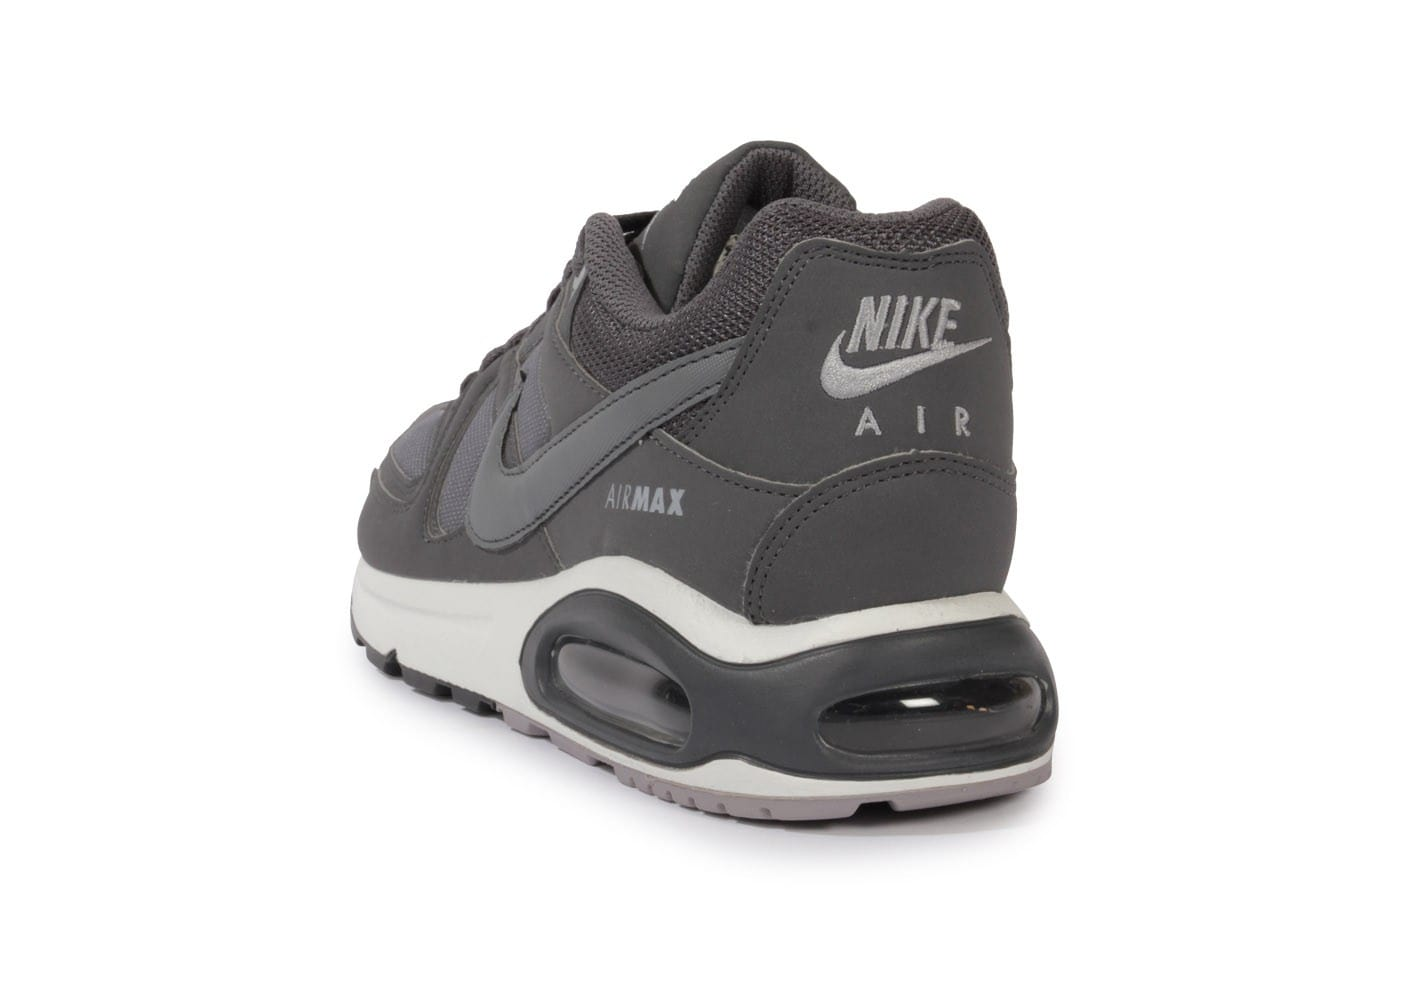 Nike Air Max Command Grise Chaussures Baskets homme